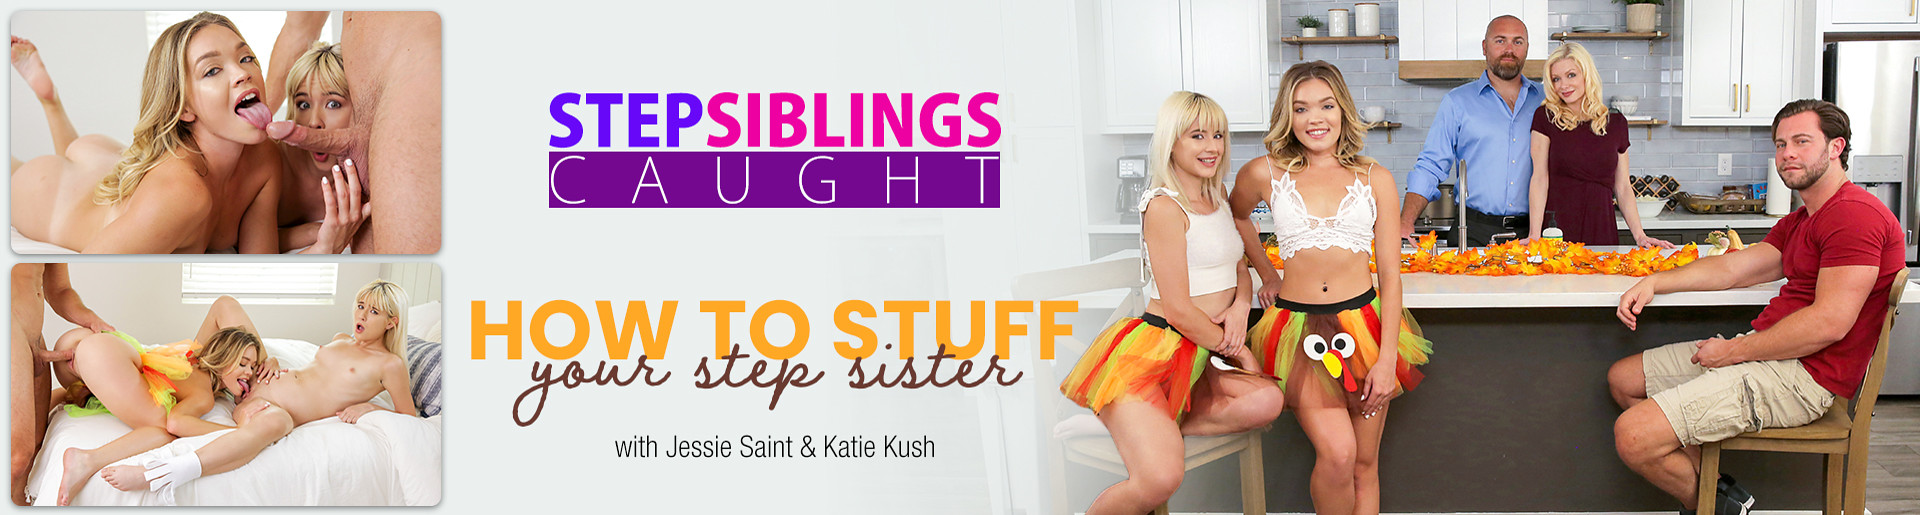 StepSiblingsCaught - How to Stuff Your Step Sister with Jessie Saint and Katie Kush